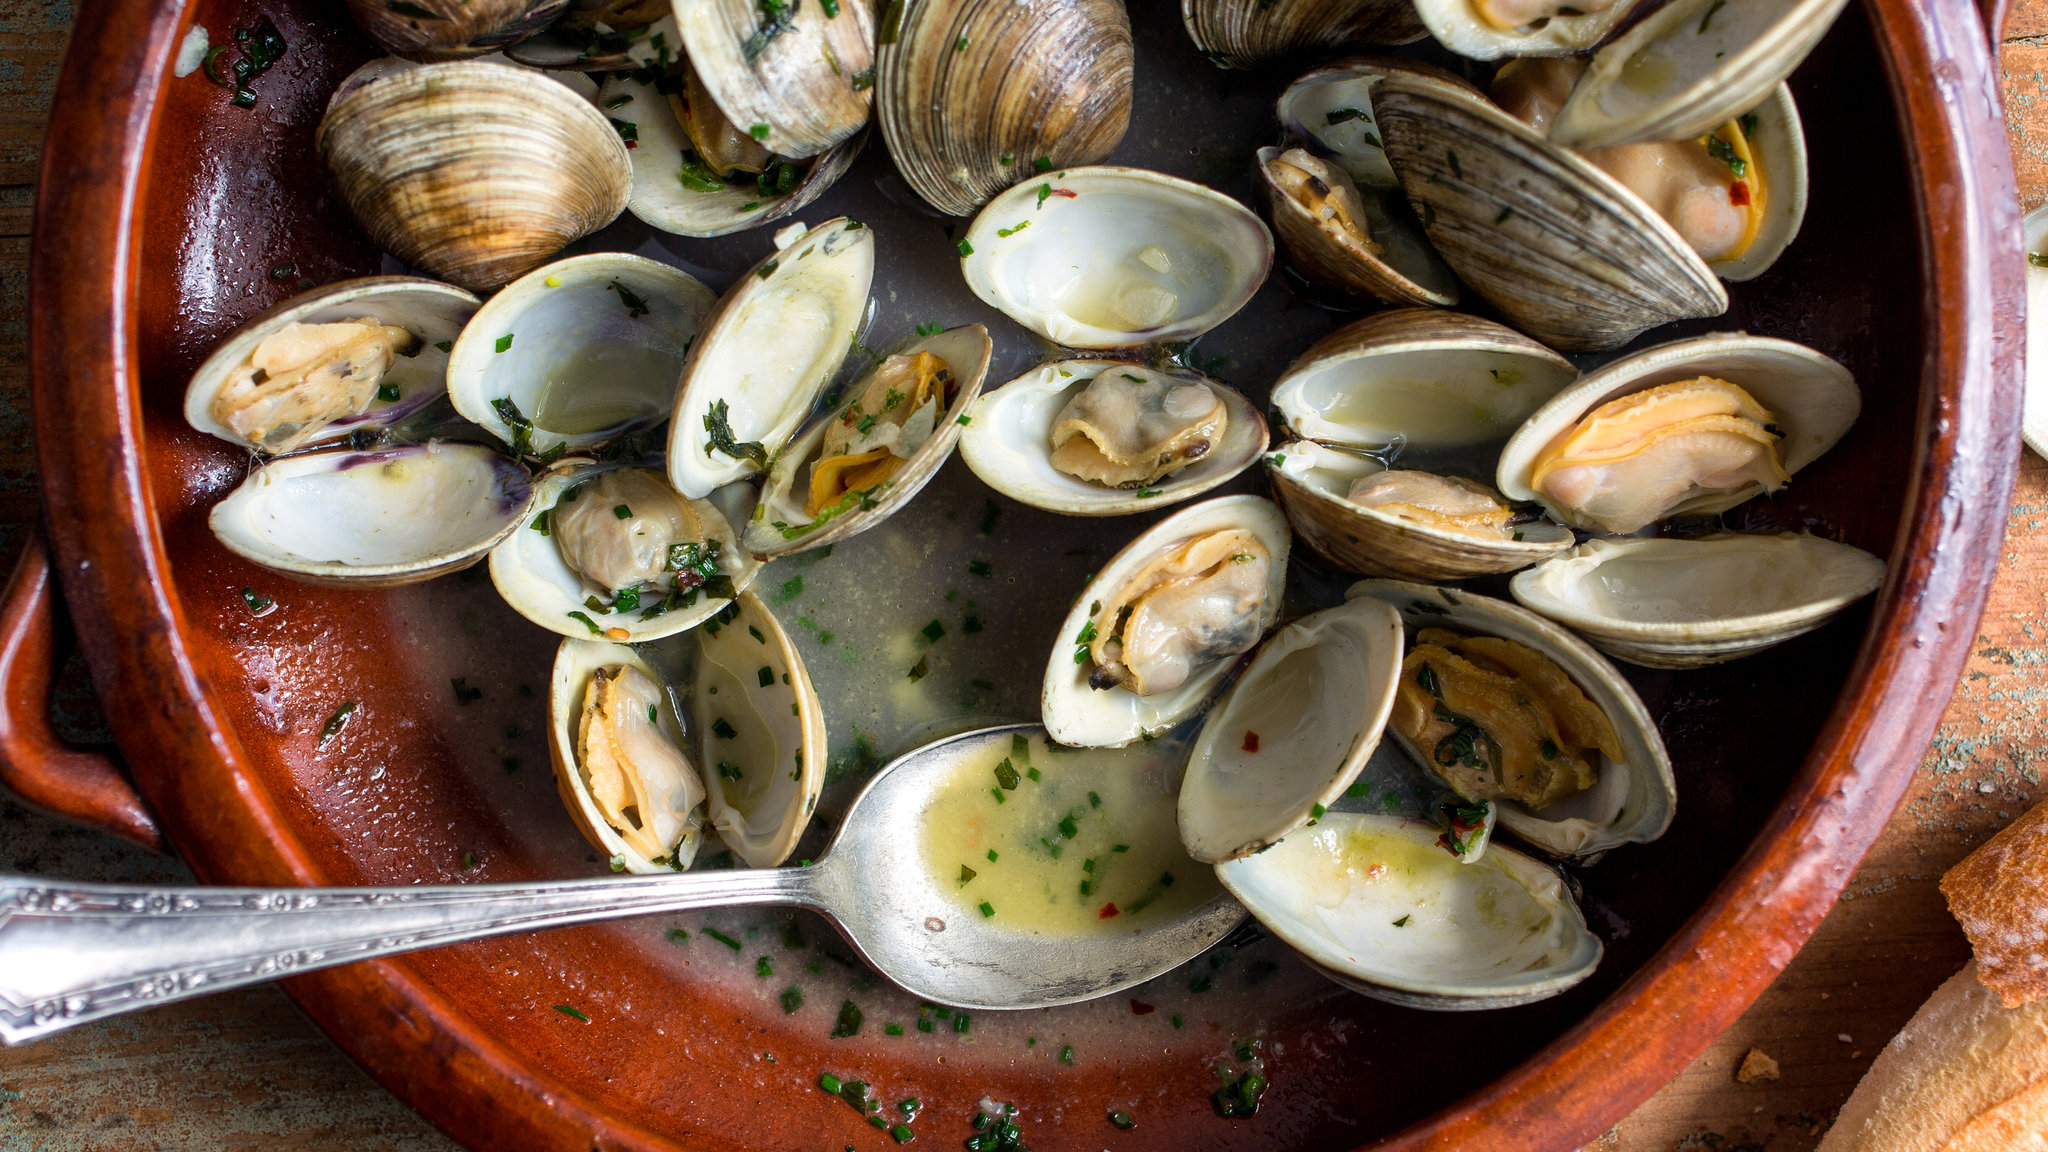 """Starting tonight we are serving steamers on Thursday nights in limited quantities. They are available plain or """"beer and garlic"""" flavor. Get them while they last!"""